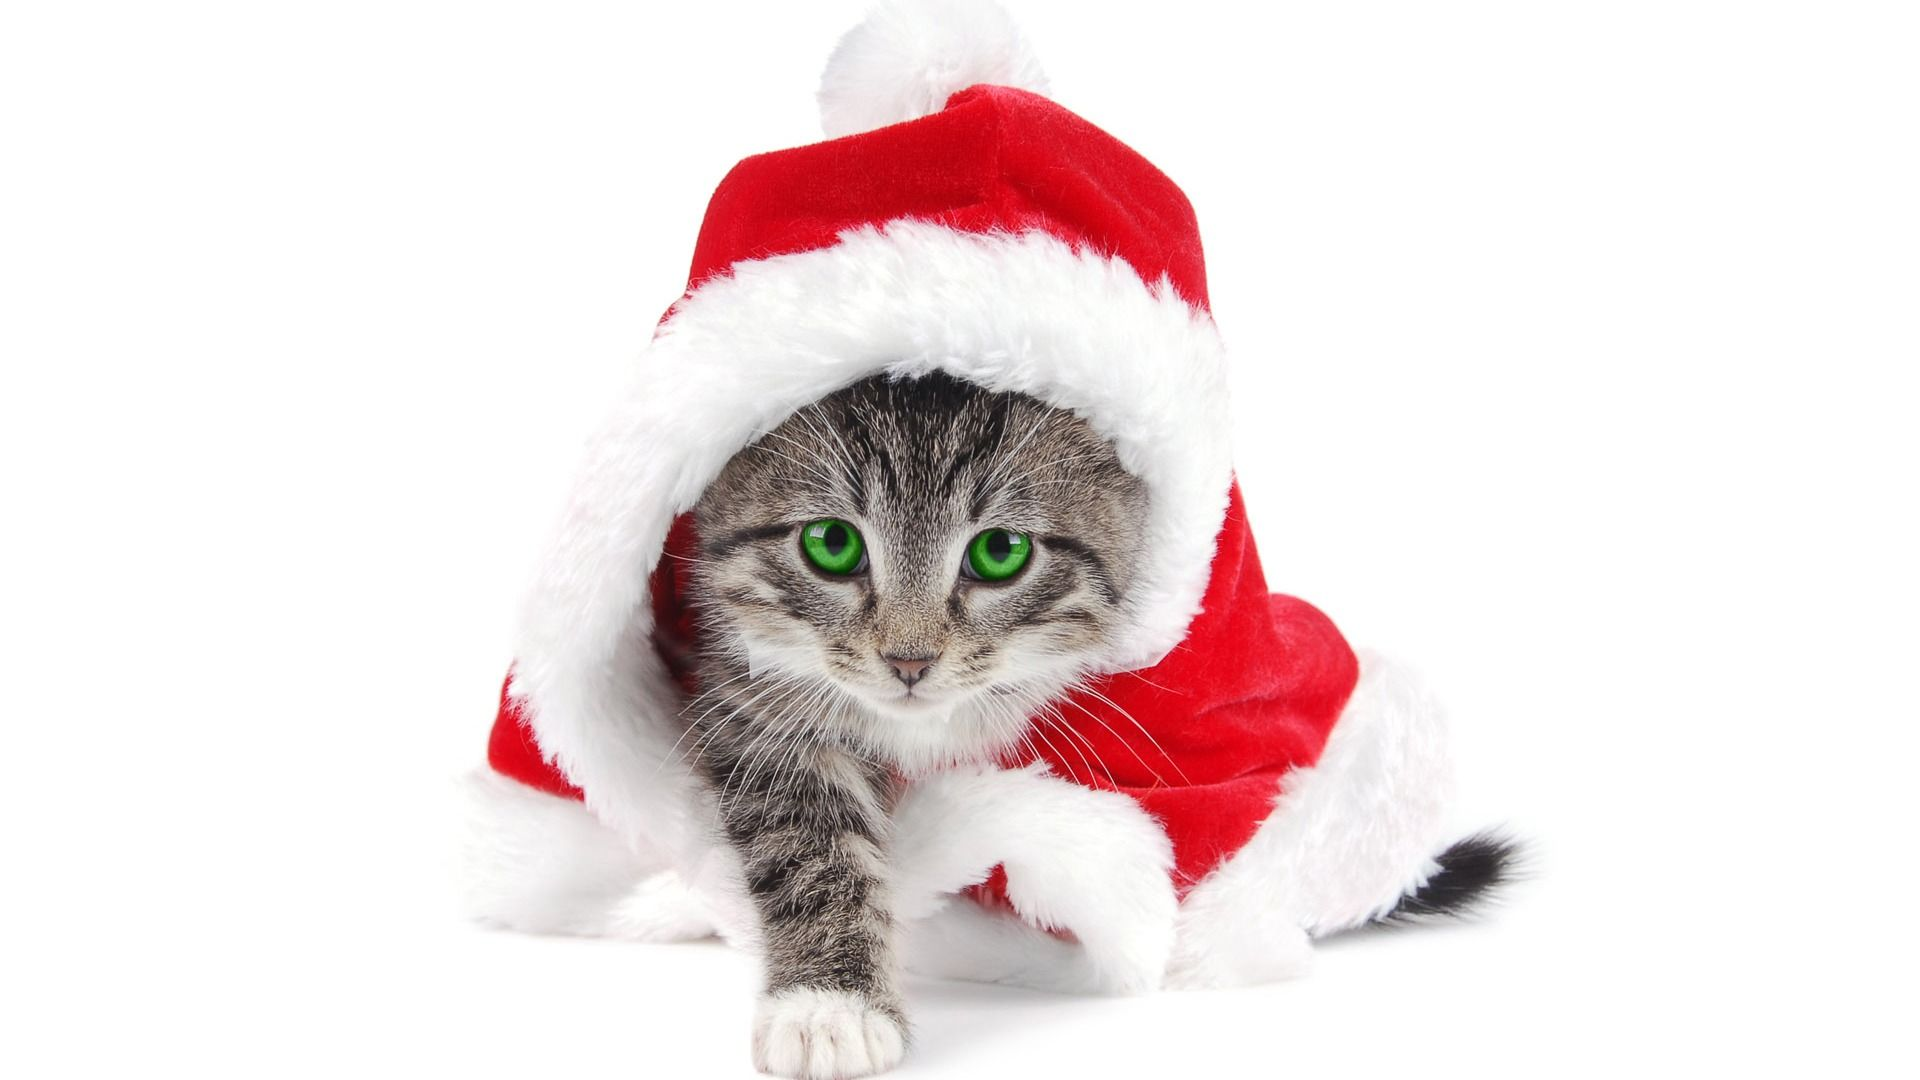 free desktop wallpaper for cat lovers, free christmas wallpapaer